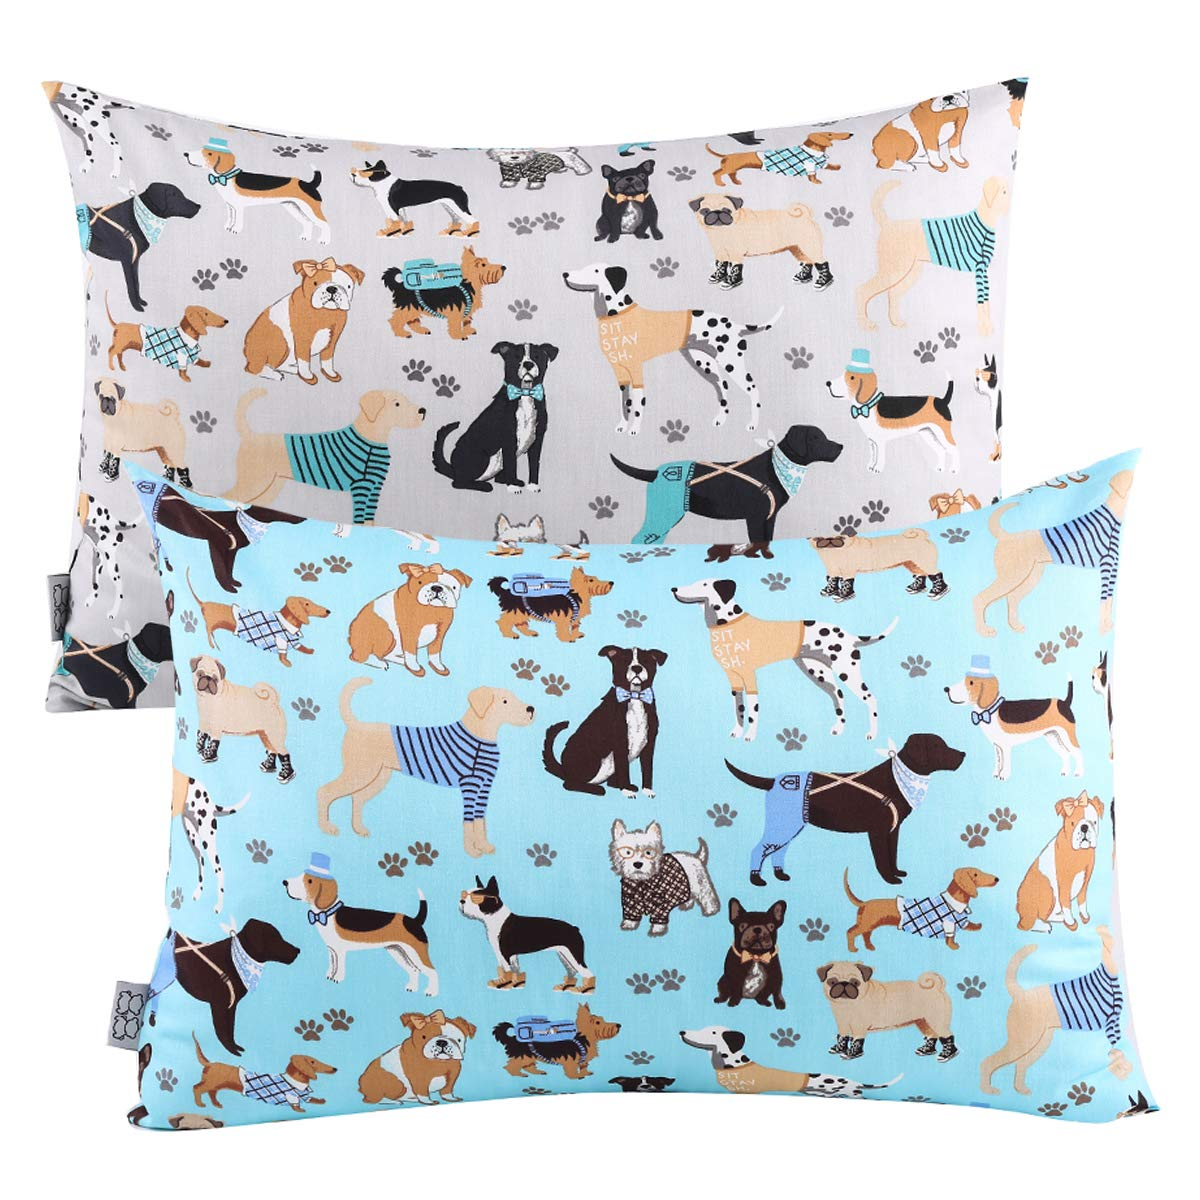 Toddler Travel Pillowcases Set of 2 - Fits Pillows sizesd 13 x 18